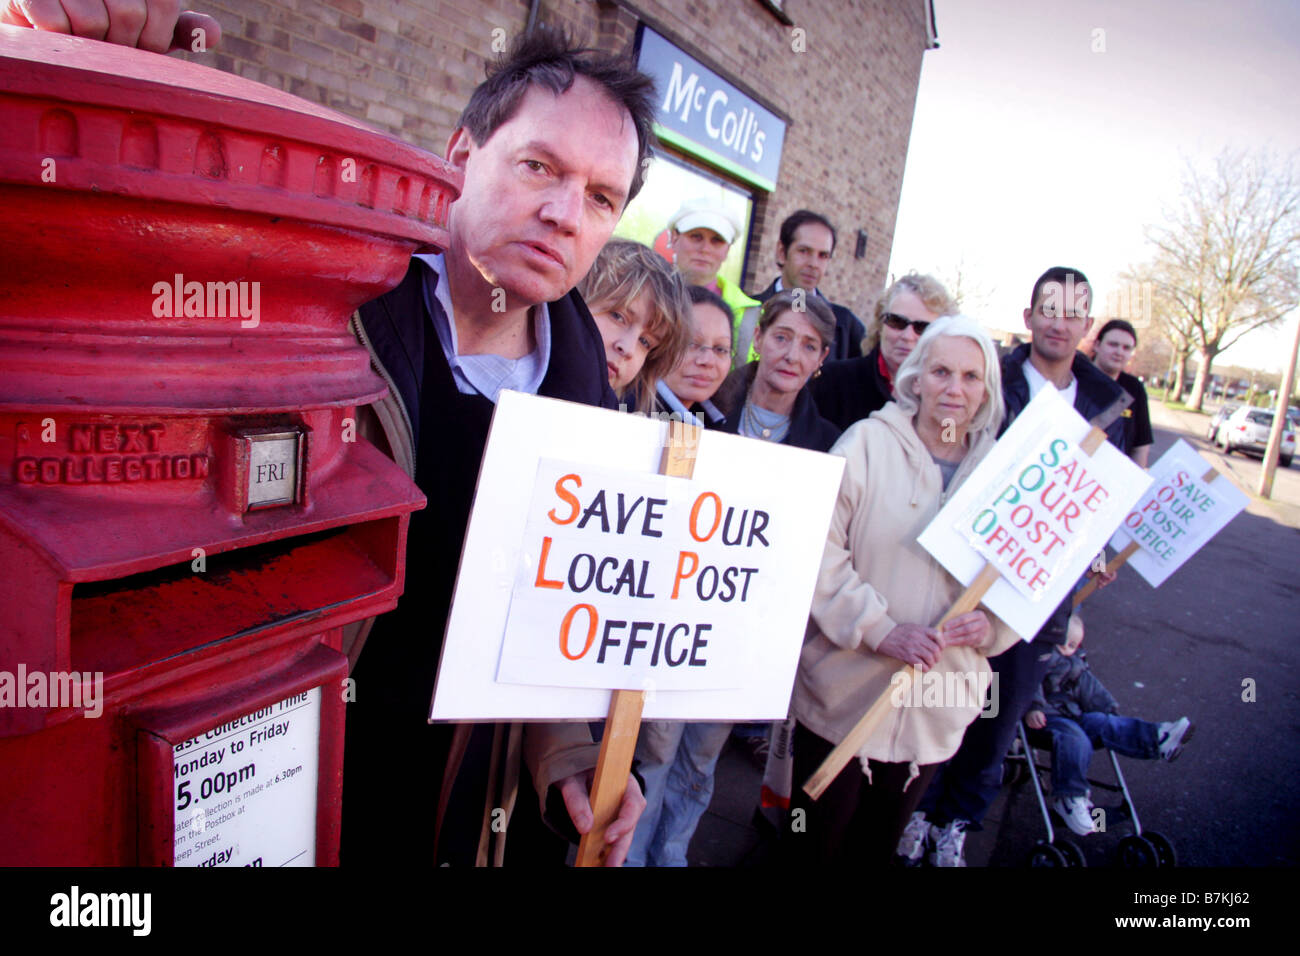 Locals fight to save their post office in Bicester, Oxfordshire - Stock Image